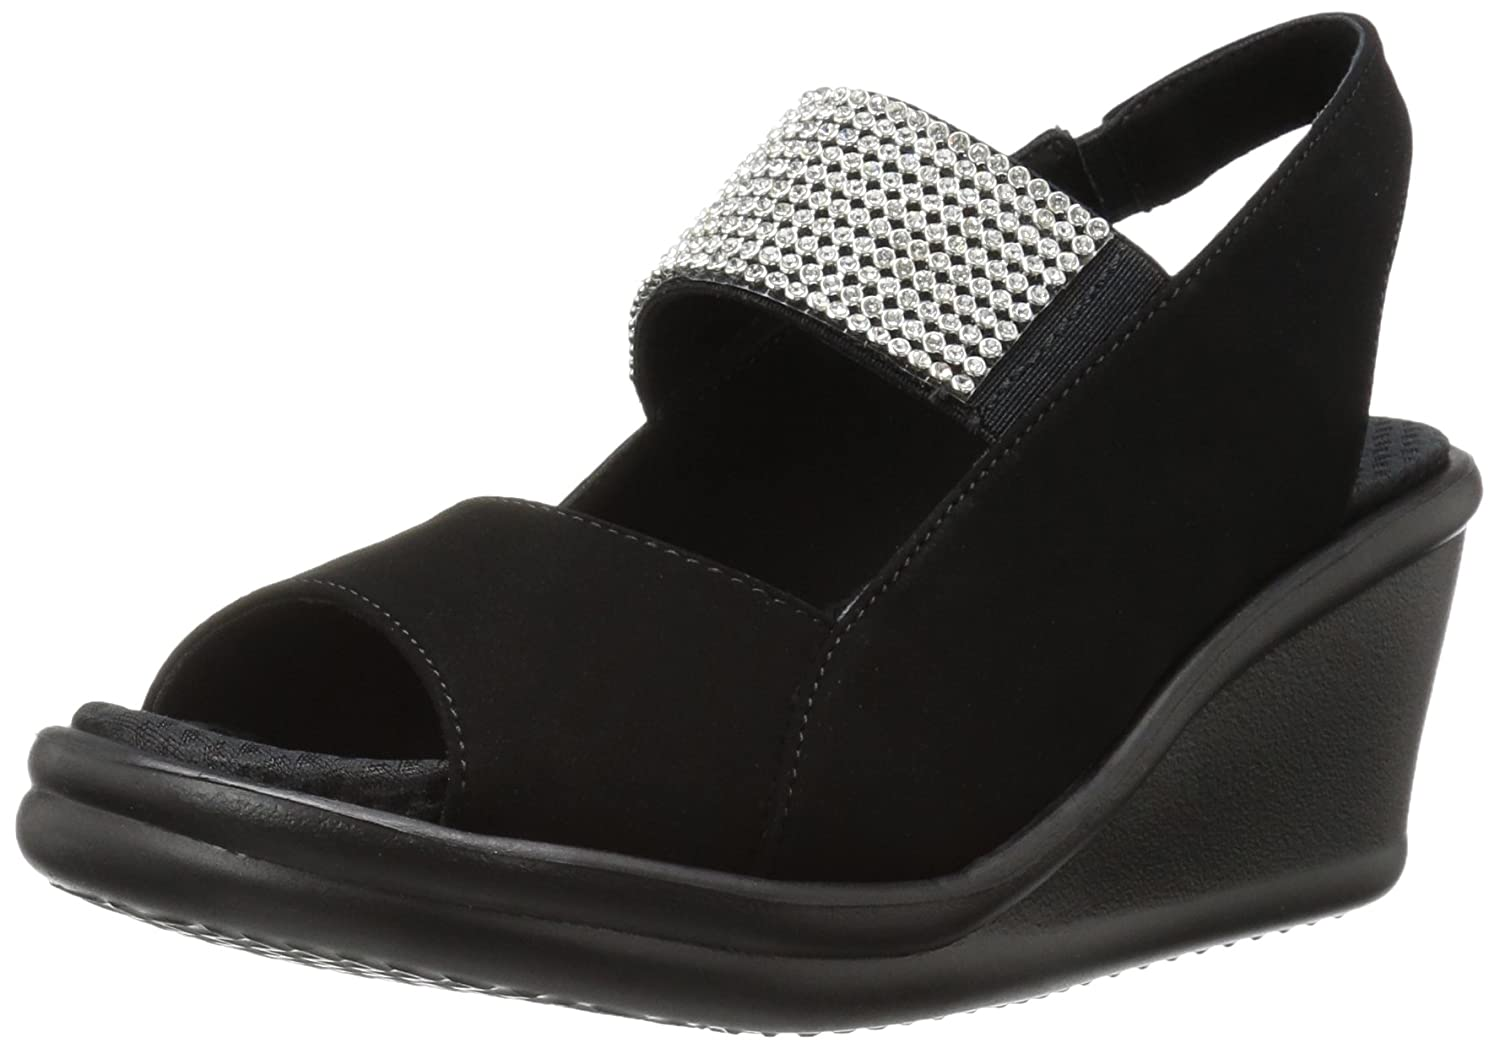 Skechers Cali Women's Rumblers Sparkle on Wedge Sandal